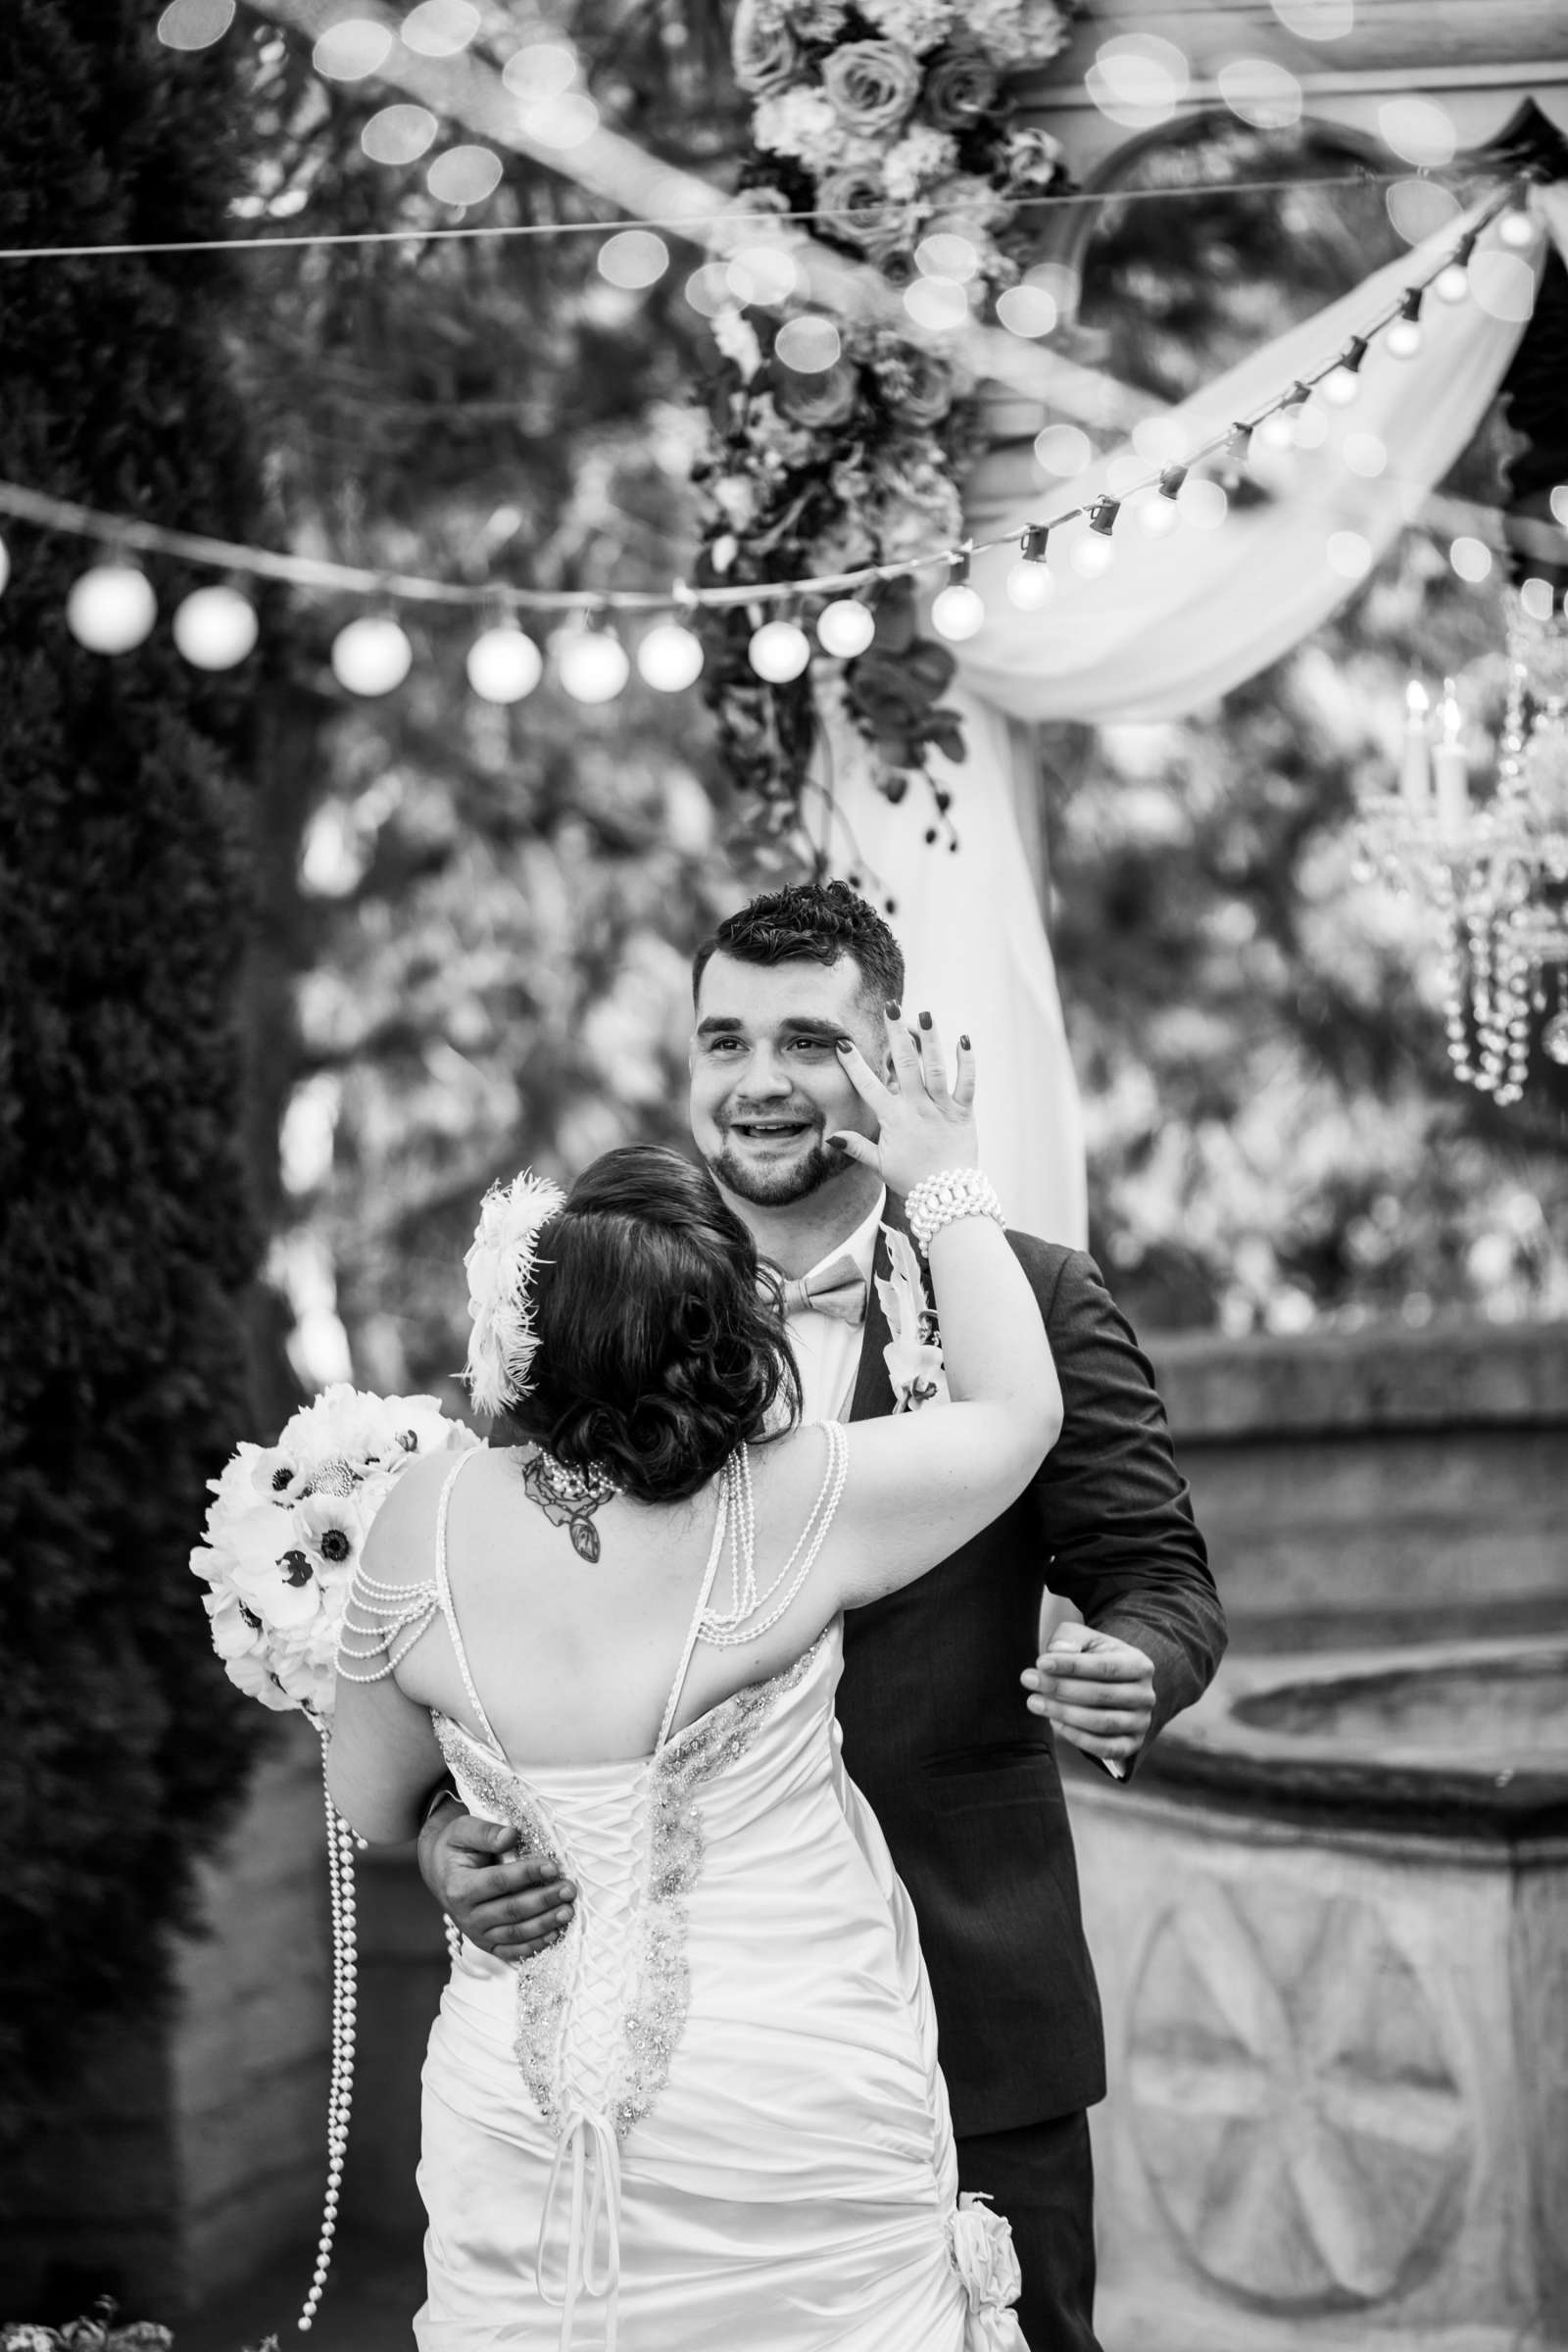 The Prado Wedding coordinated by Breezy Day Weddings, Aalis and Michael Wedding Photo #69 by True Photography